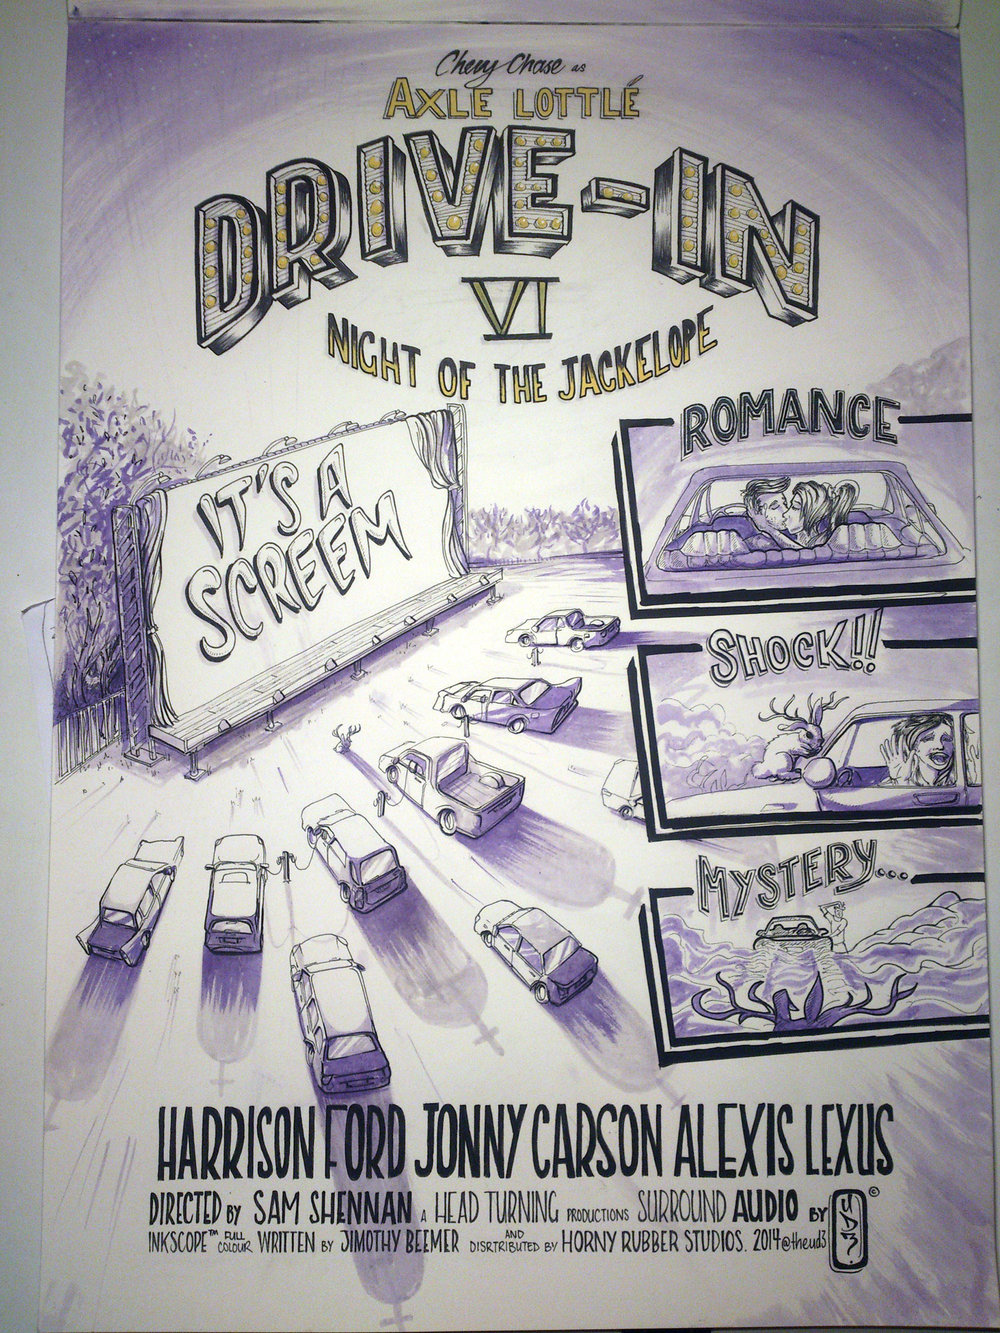 My Poster for the show.: Drive-In 6: Night of the Jackelope